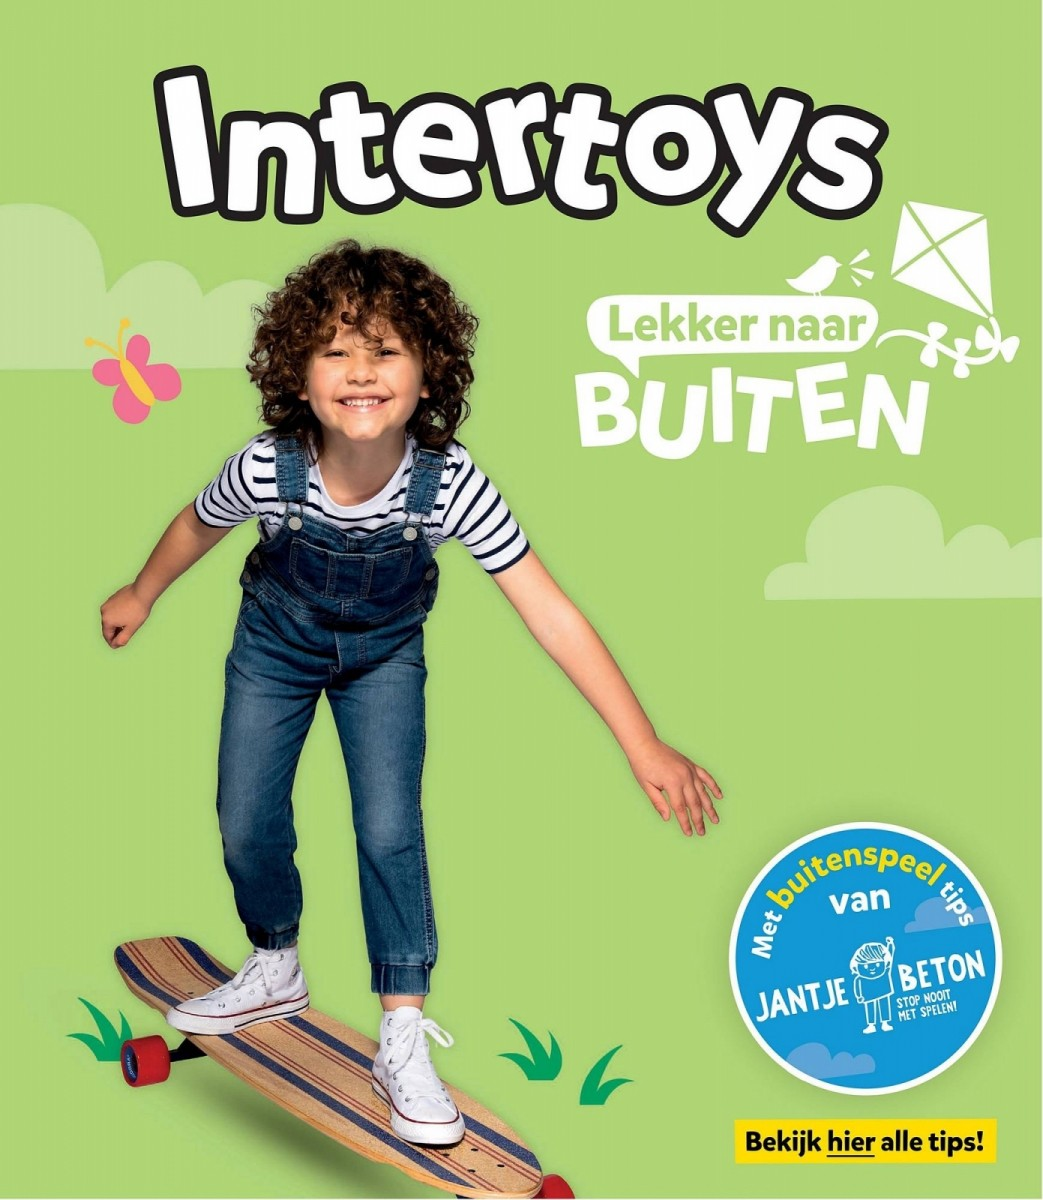 Intertoys Folder 01.04.2020 - 31.08.2020